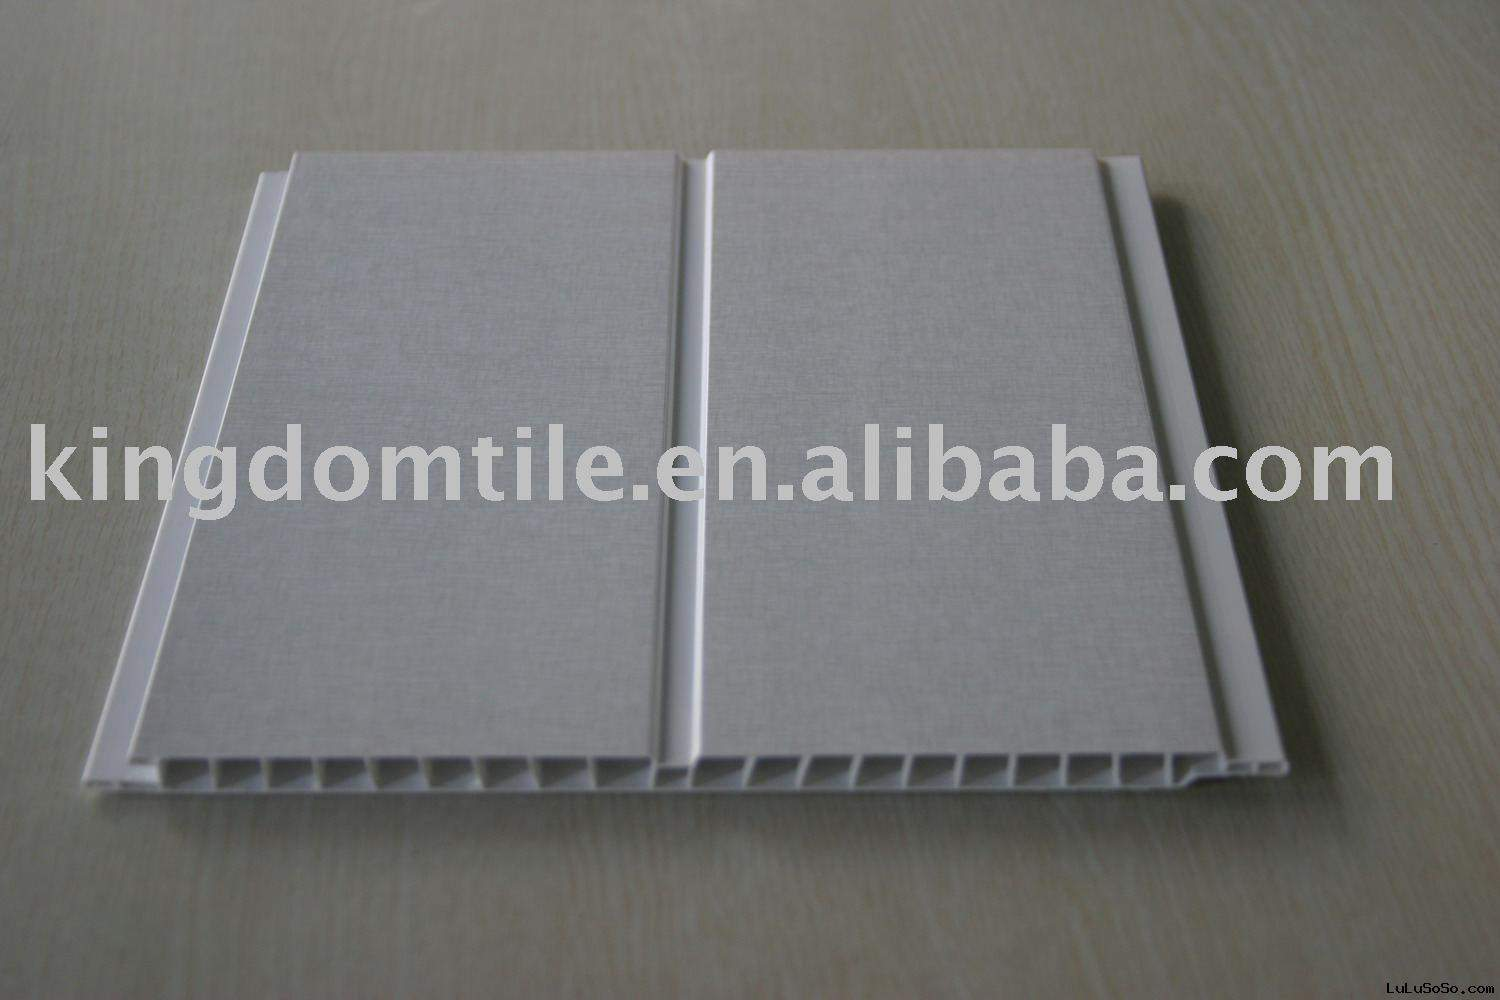 Tile Board Design-1